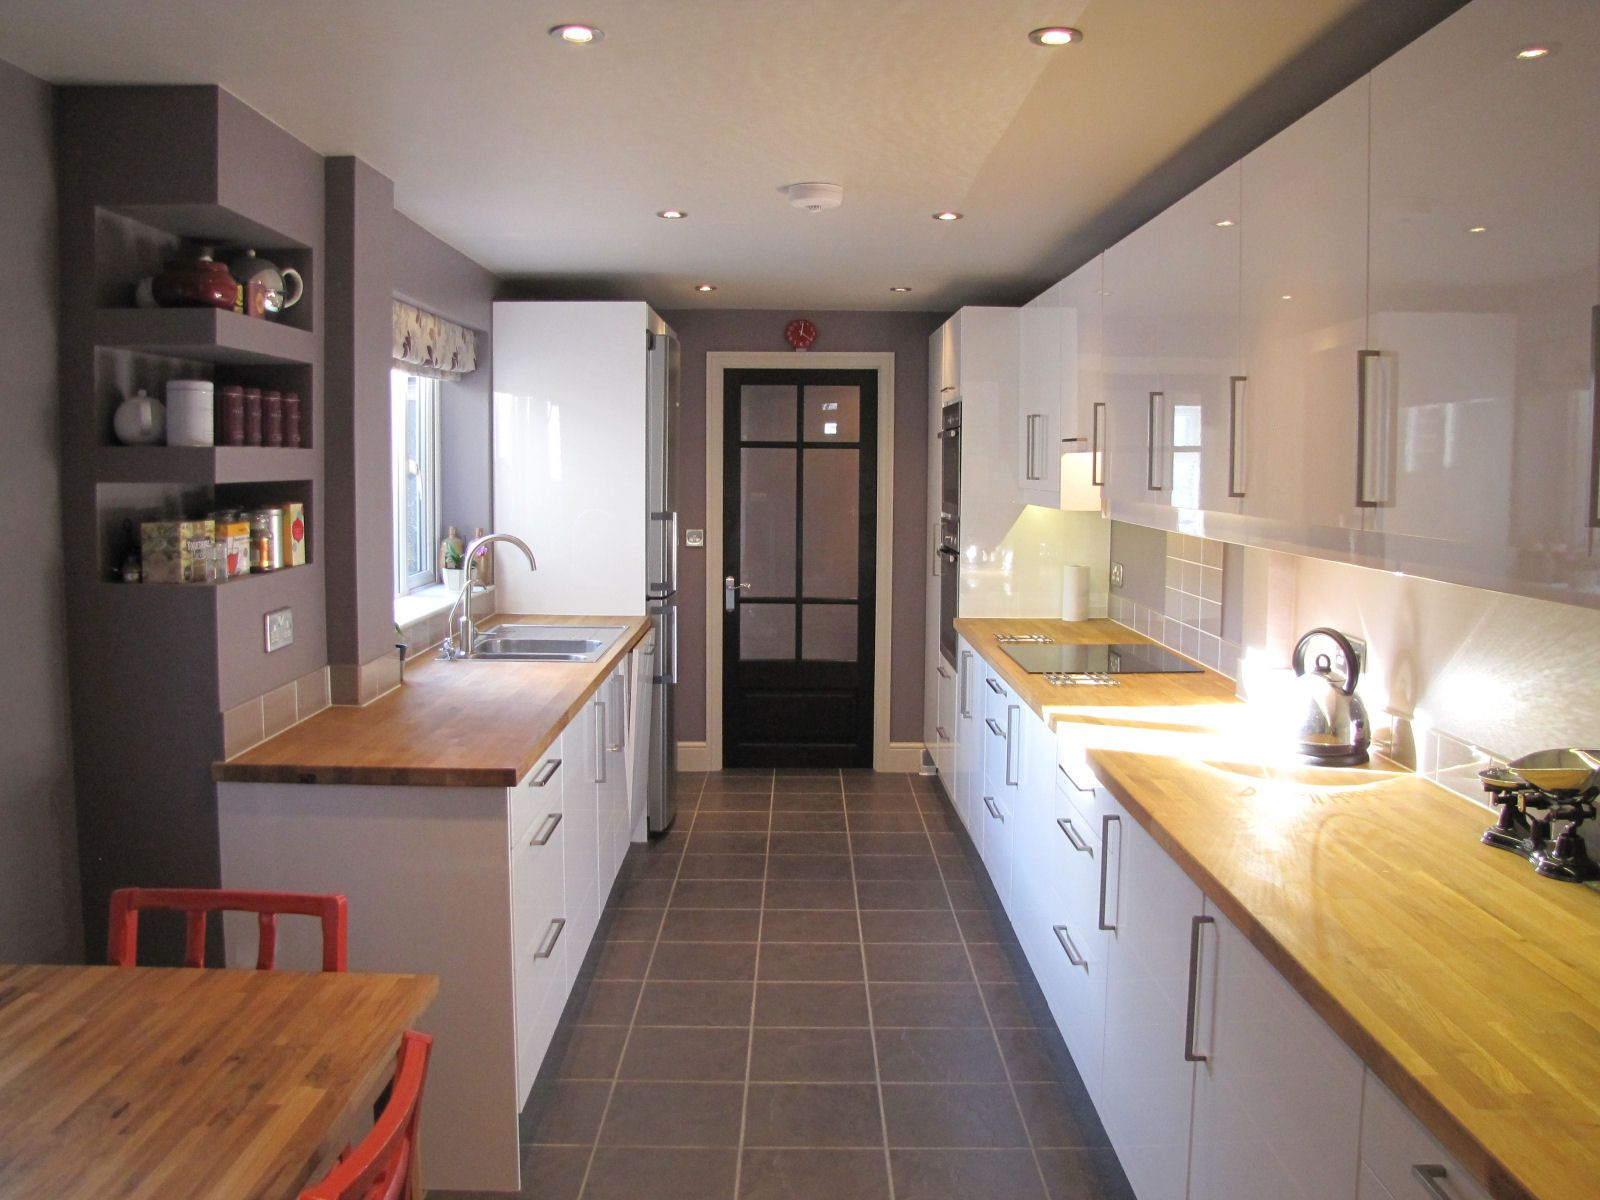 Terrace House Small Kitchen Design Google Search House